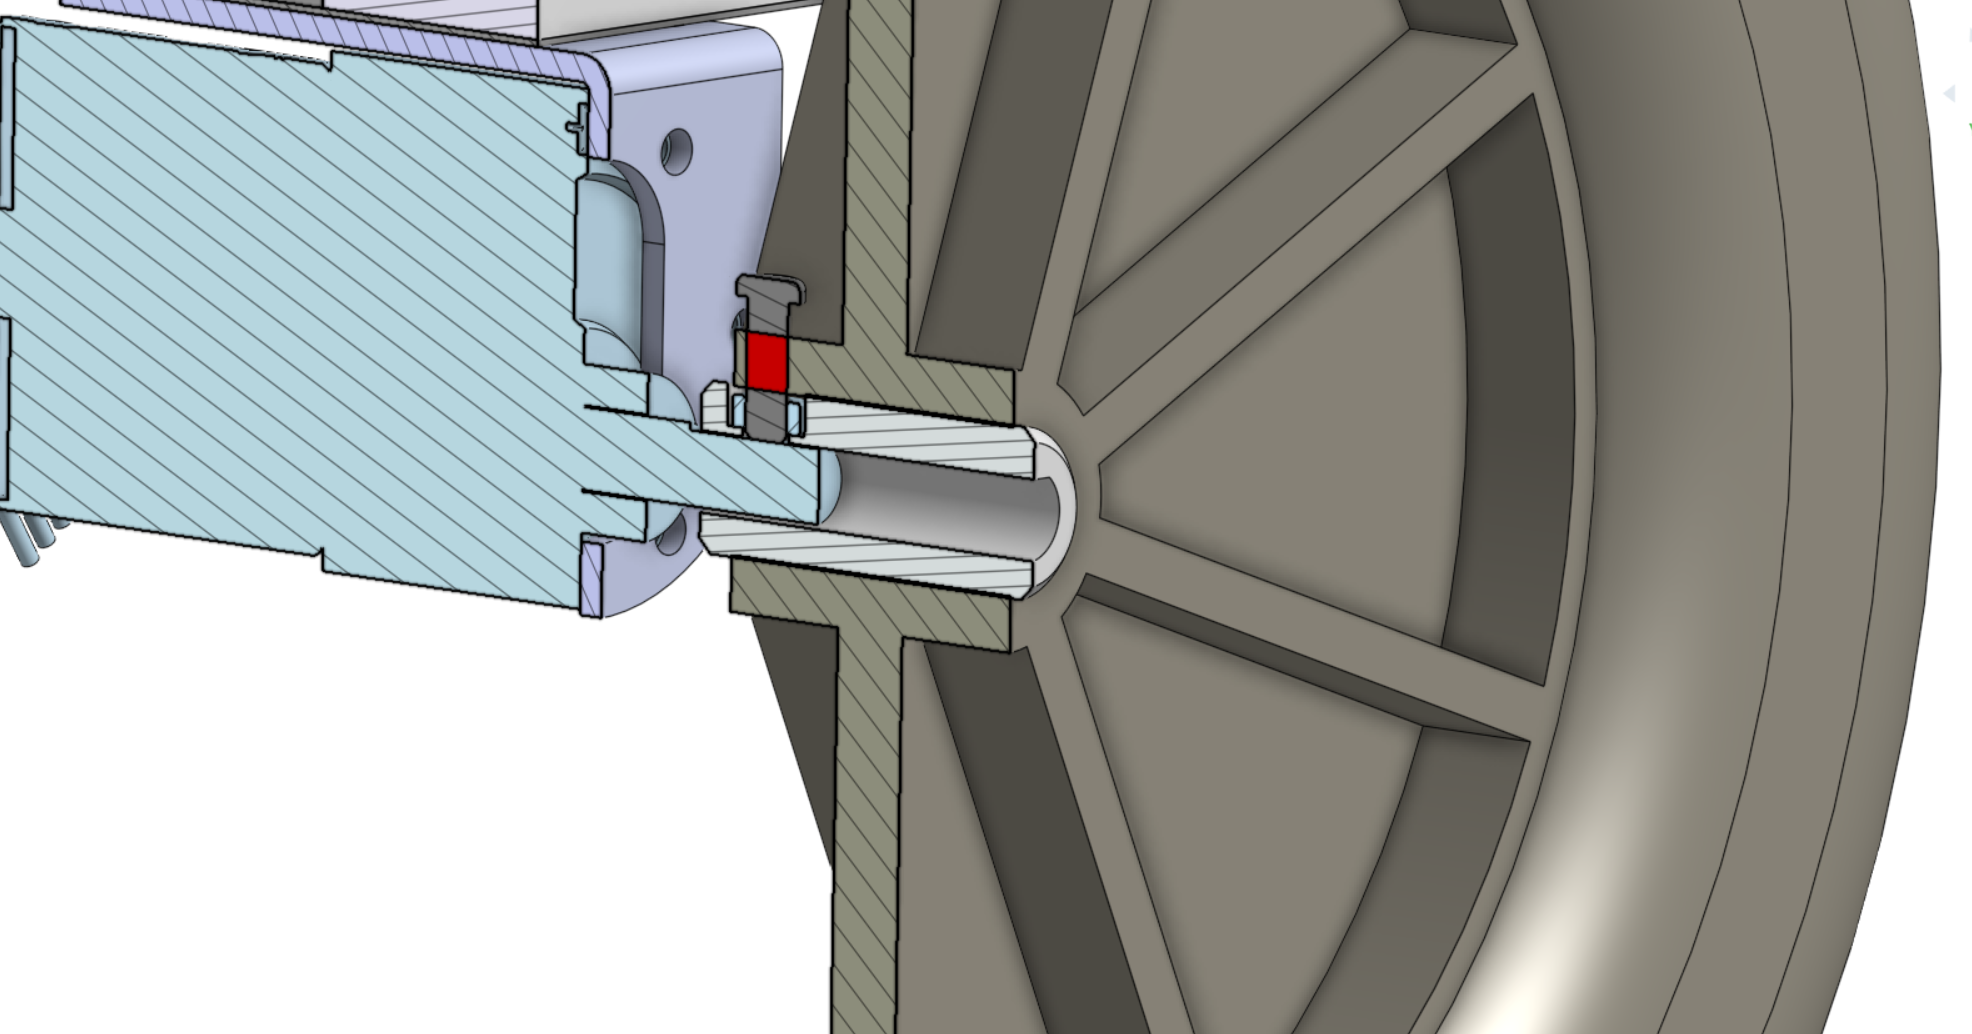 shaft_coupler_cross_section.png